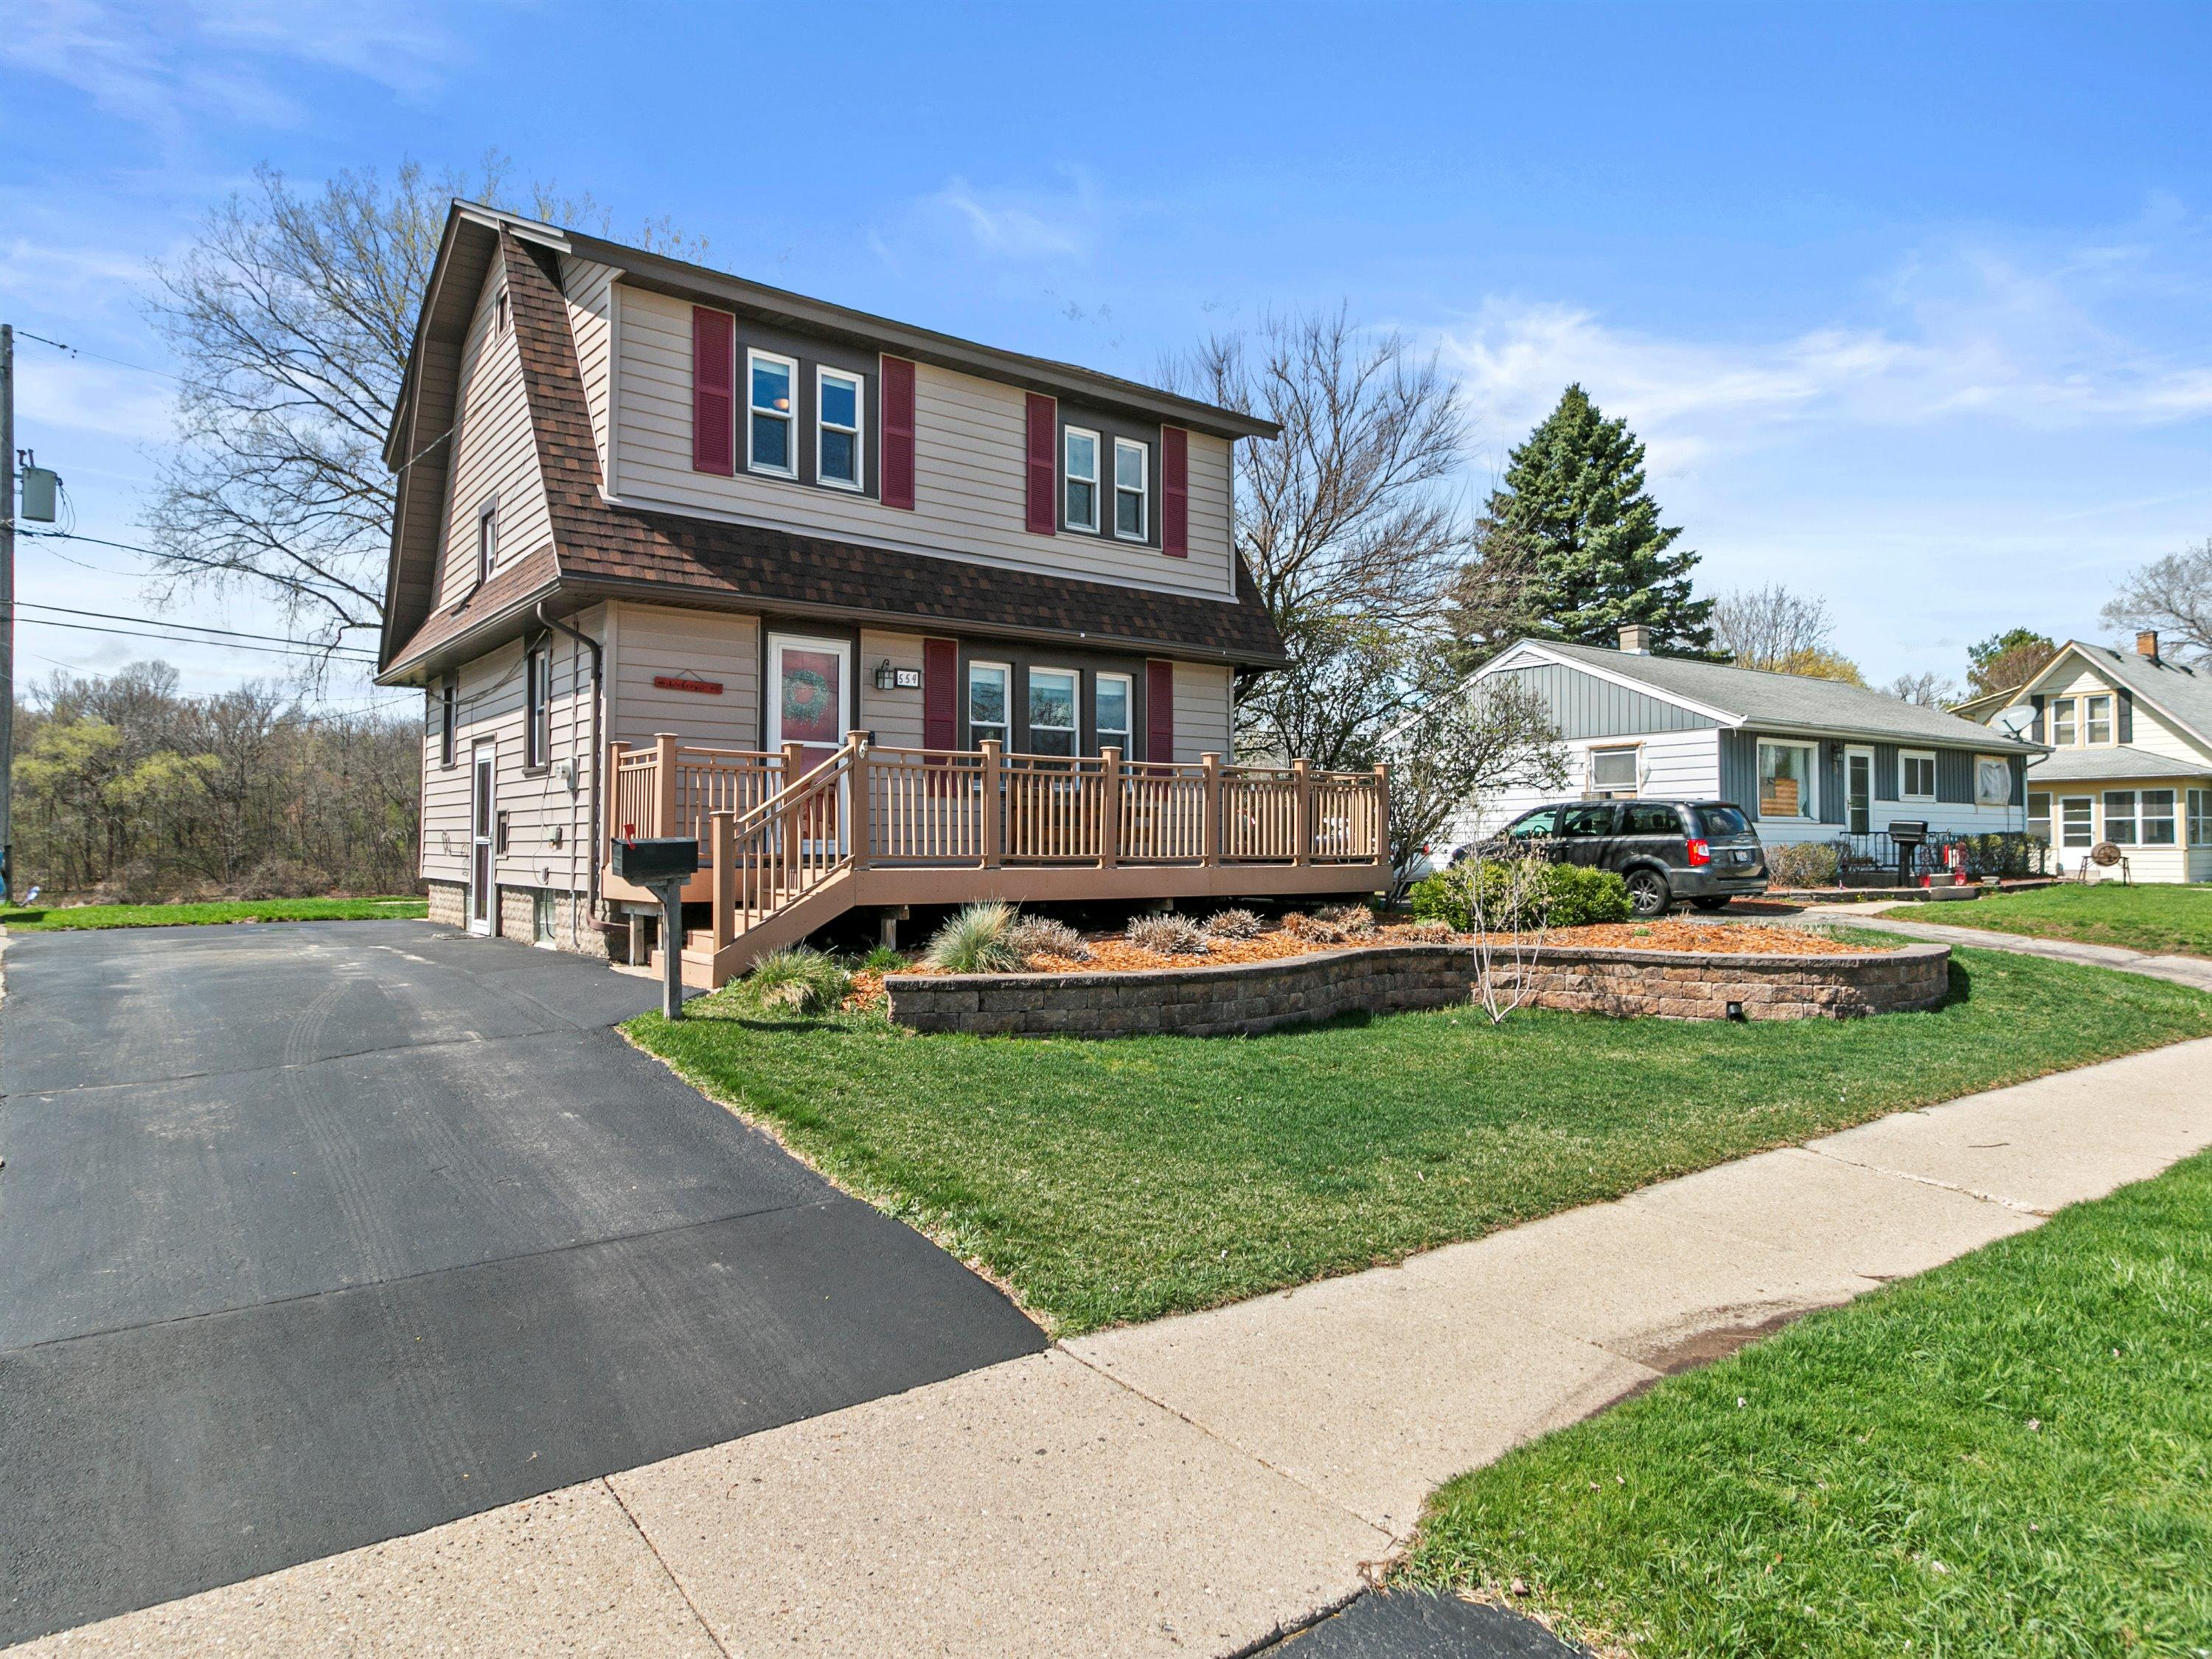 554 Moreland Blvd, Waukesha, Wisconsin 53188, 3 Bedrooms Bedrooms, 6 Rooms Rooms,1 BathroomBathrooms,Single-Family,For Sale,Moreland Blvd,1735375